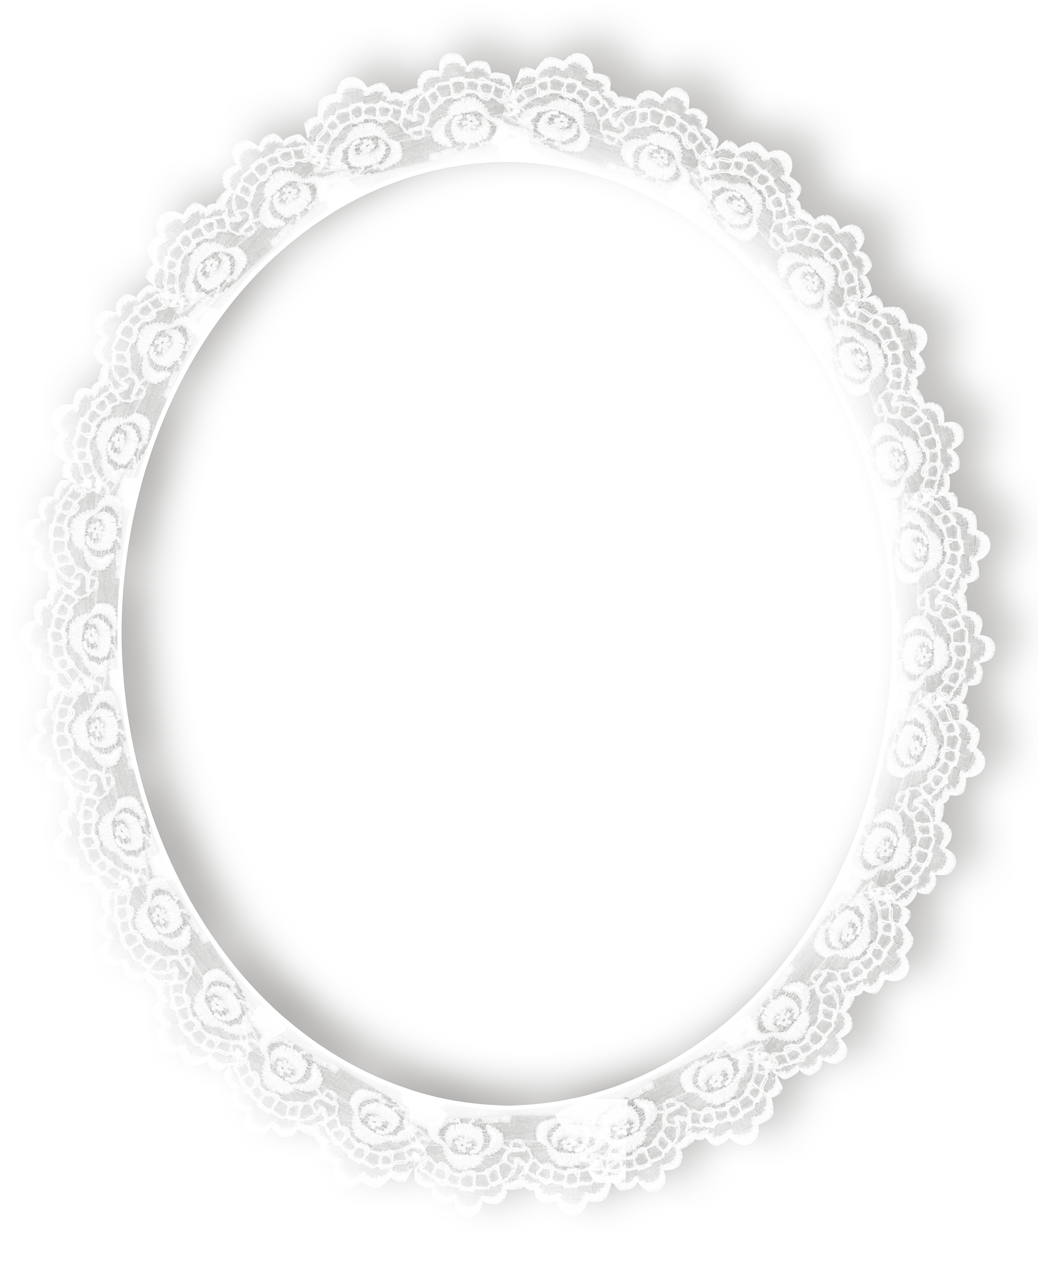 Best photos of transparent. Lace clipart oval